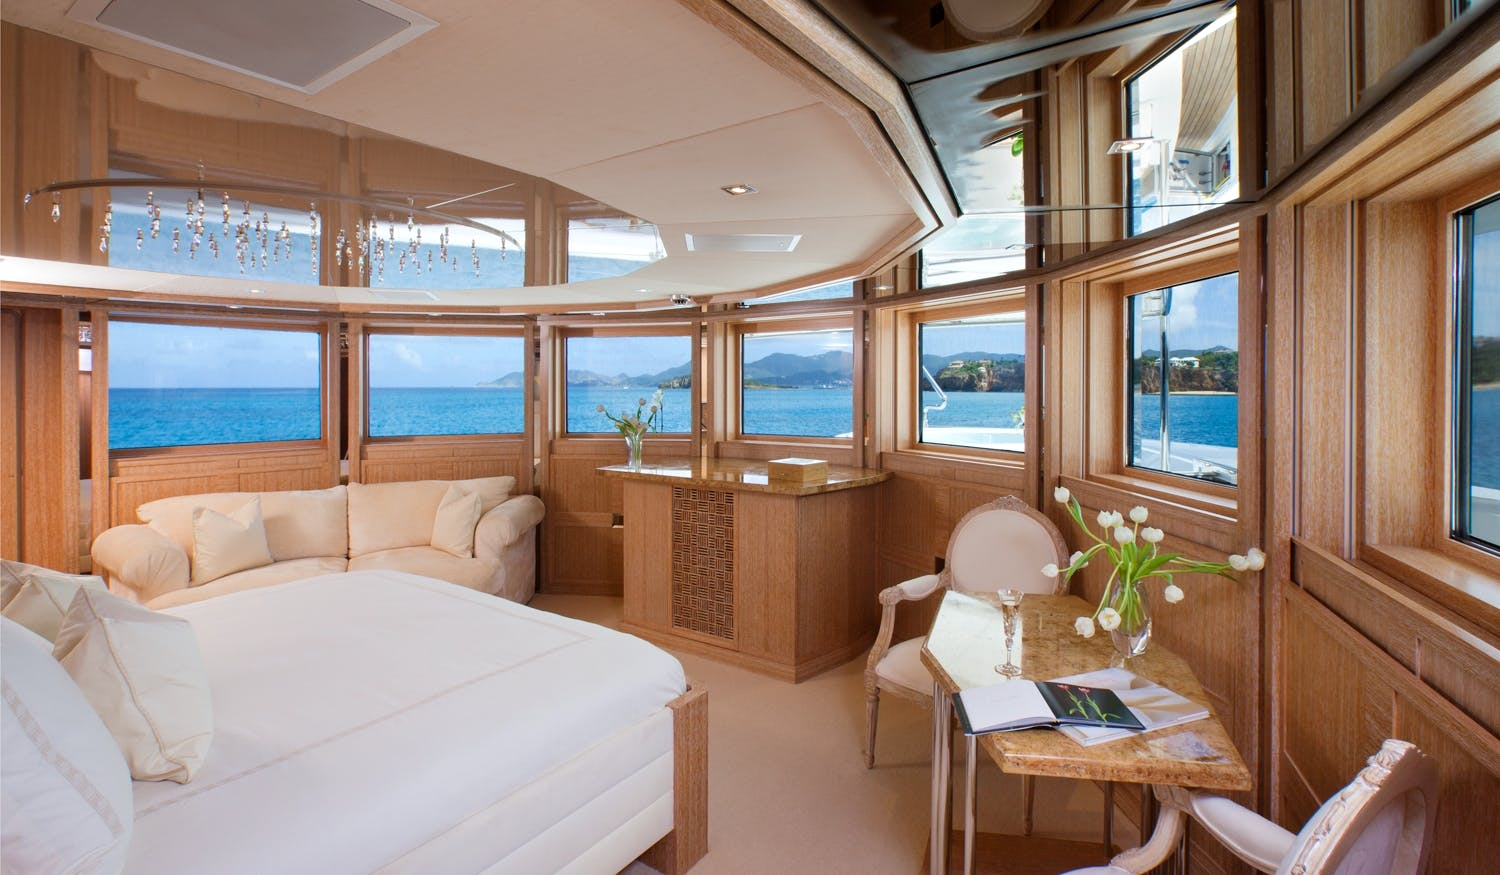 Seasonal Rates for SUNRISE Private Luxury Yacht For Charter